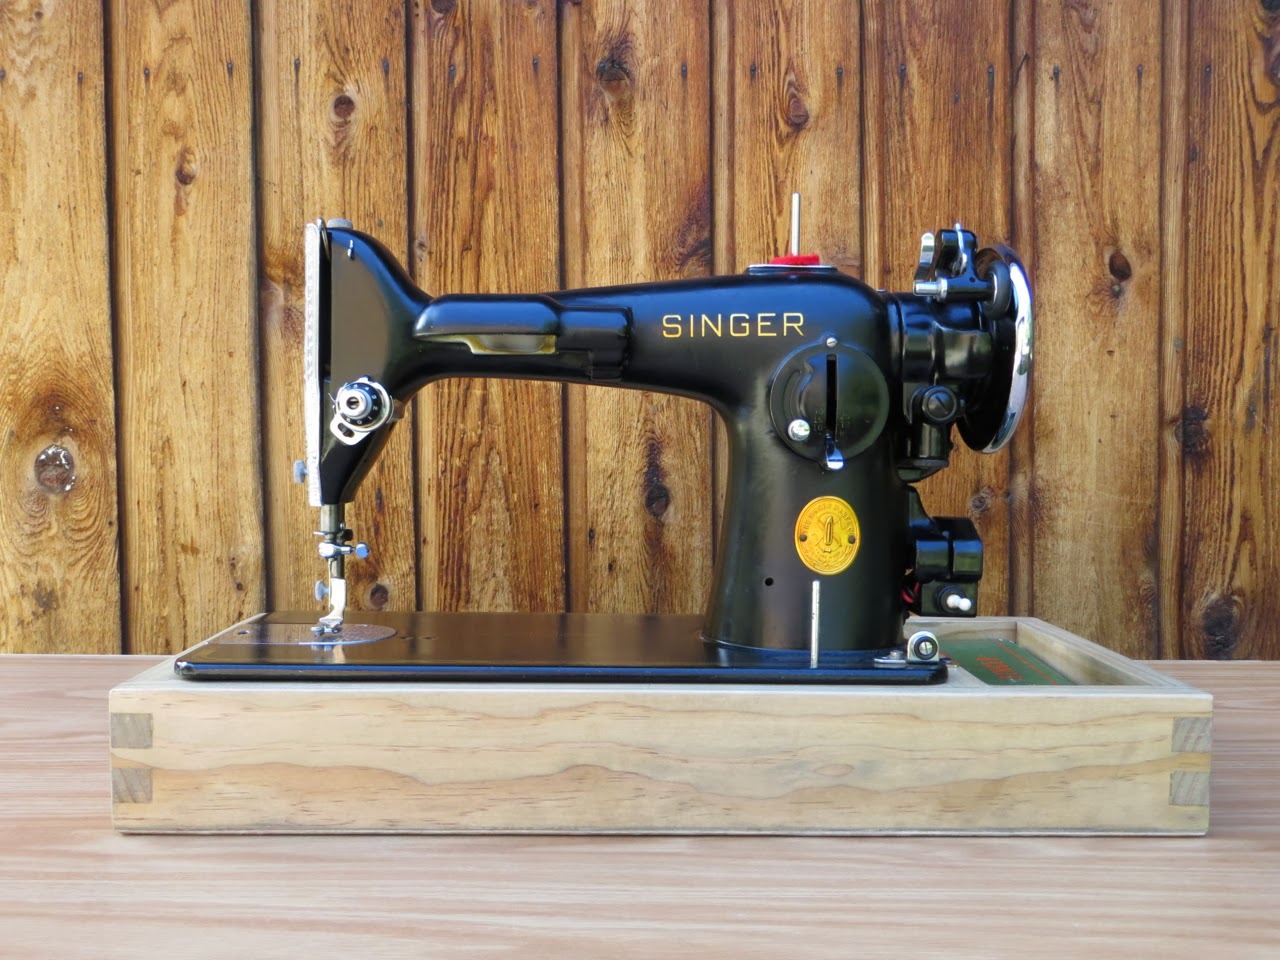 the project lady singer sewing machine wood base tutorial pictures of building process. Black Bedroom Furniture Sets. Home Design Ideas